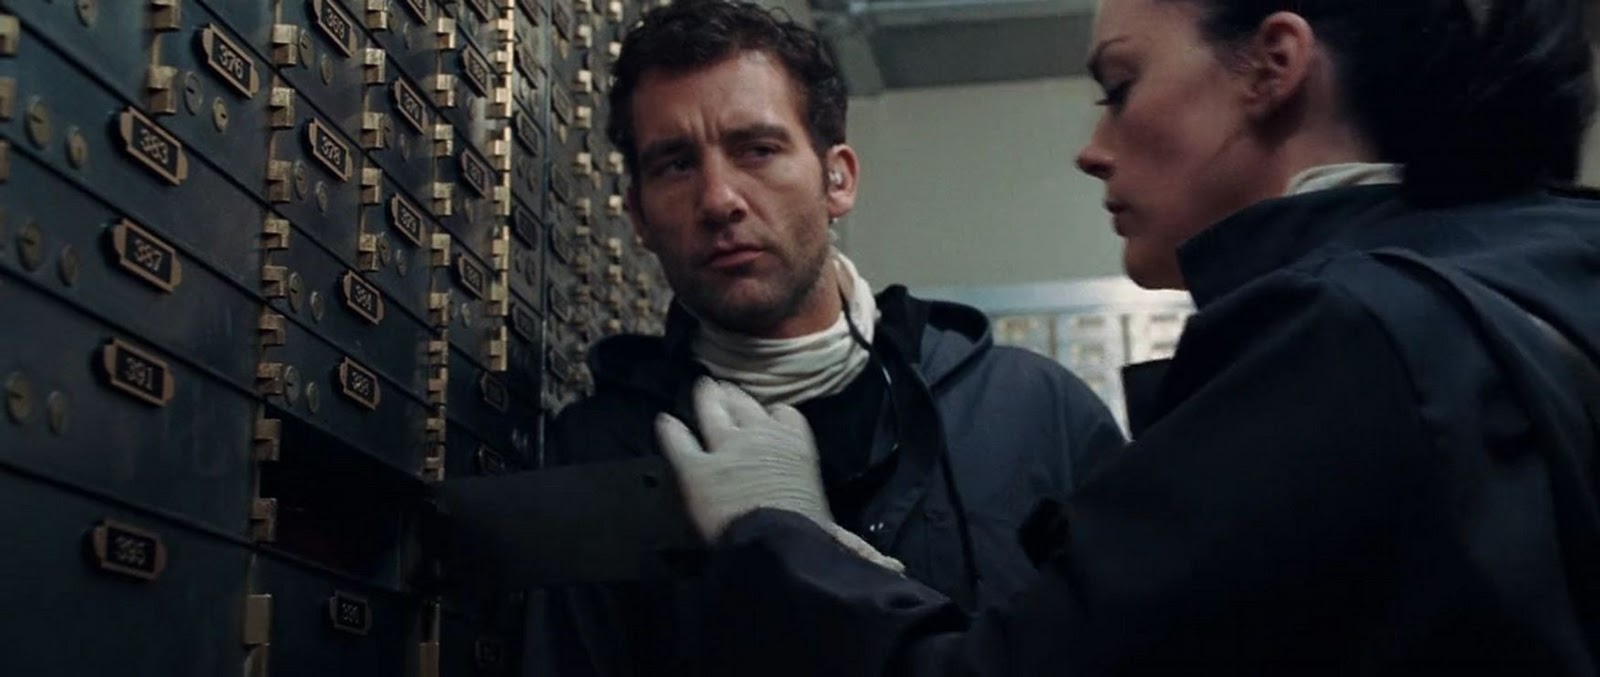 analysis of the film inside man Detailed plot synopsis reviews of inside man master thief dalton russell (clive owen) is a man with a plan one fine summer day in new york city, he and his gang seize control of a large wall street bank, sealing the doors and forcing their hostages to don clothing identical to their own disguises.